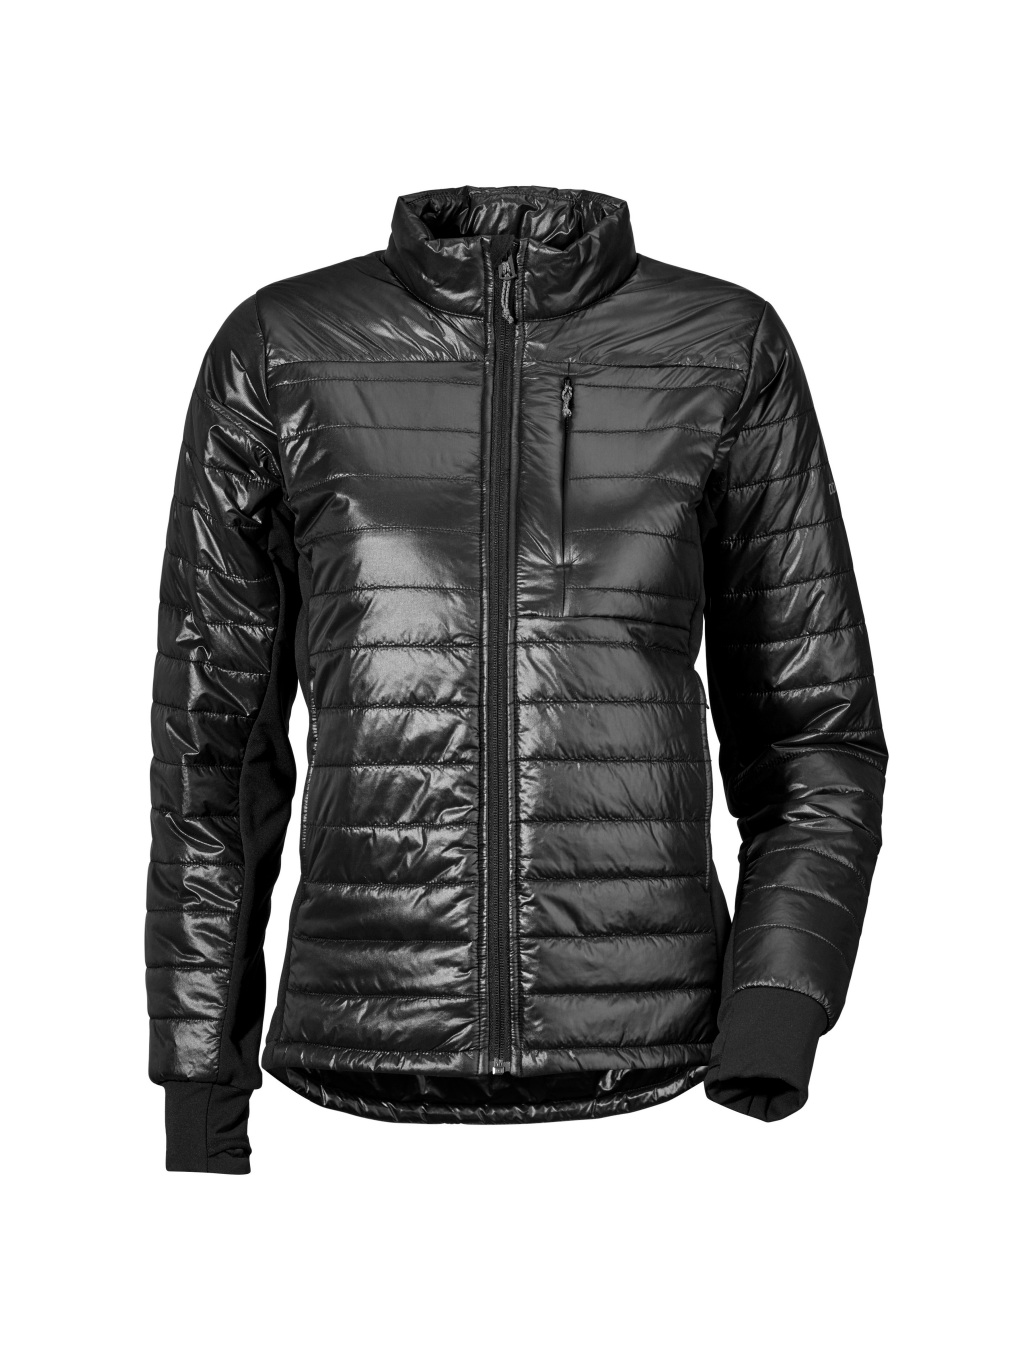 866dbea614 Didriksons Campo Tailored Padded Jacket | Walk The Storm